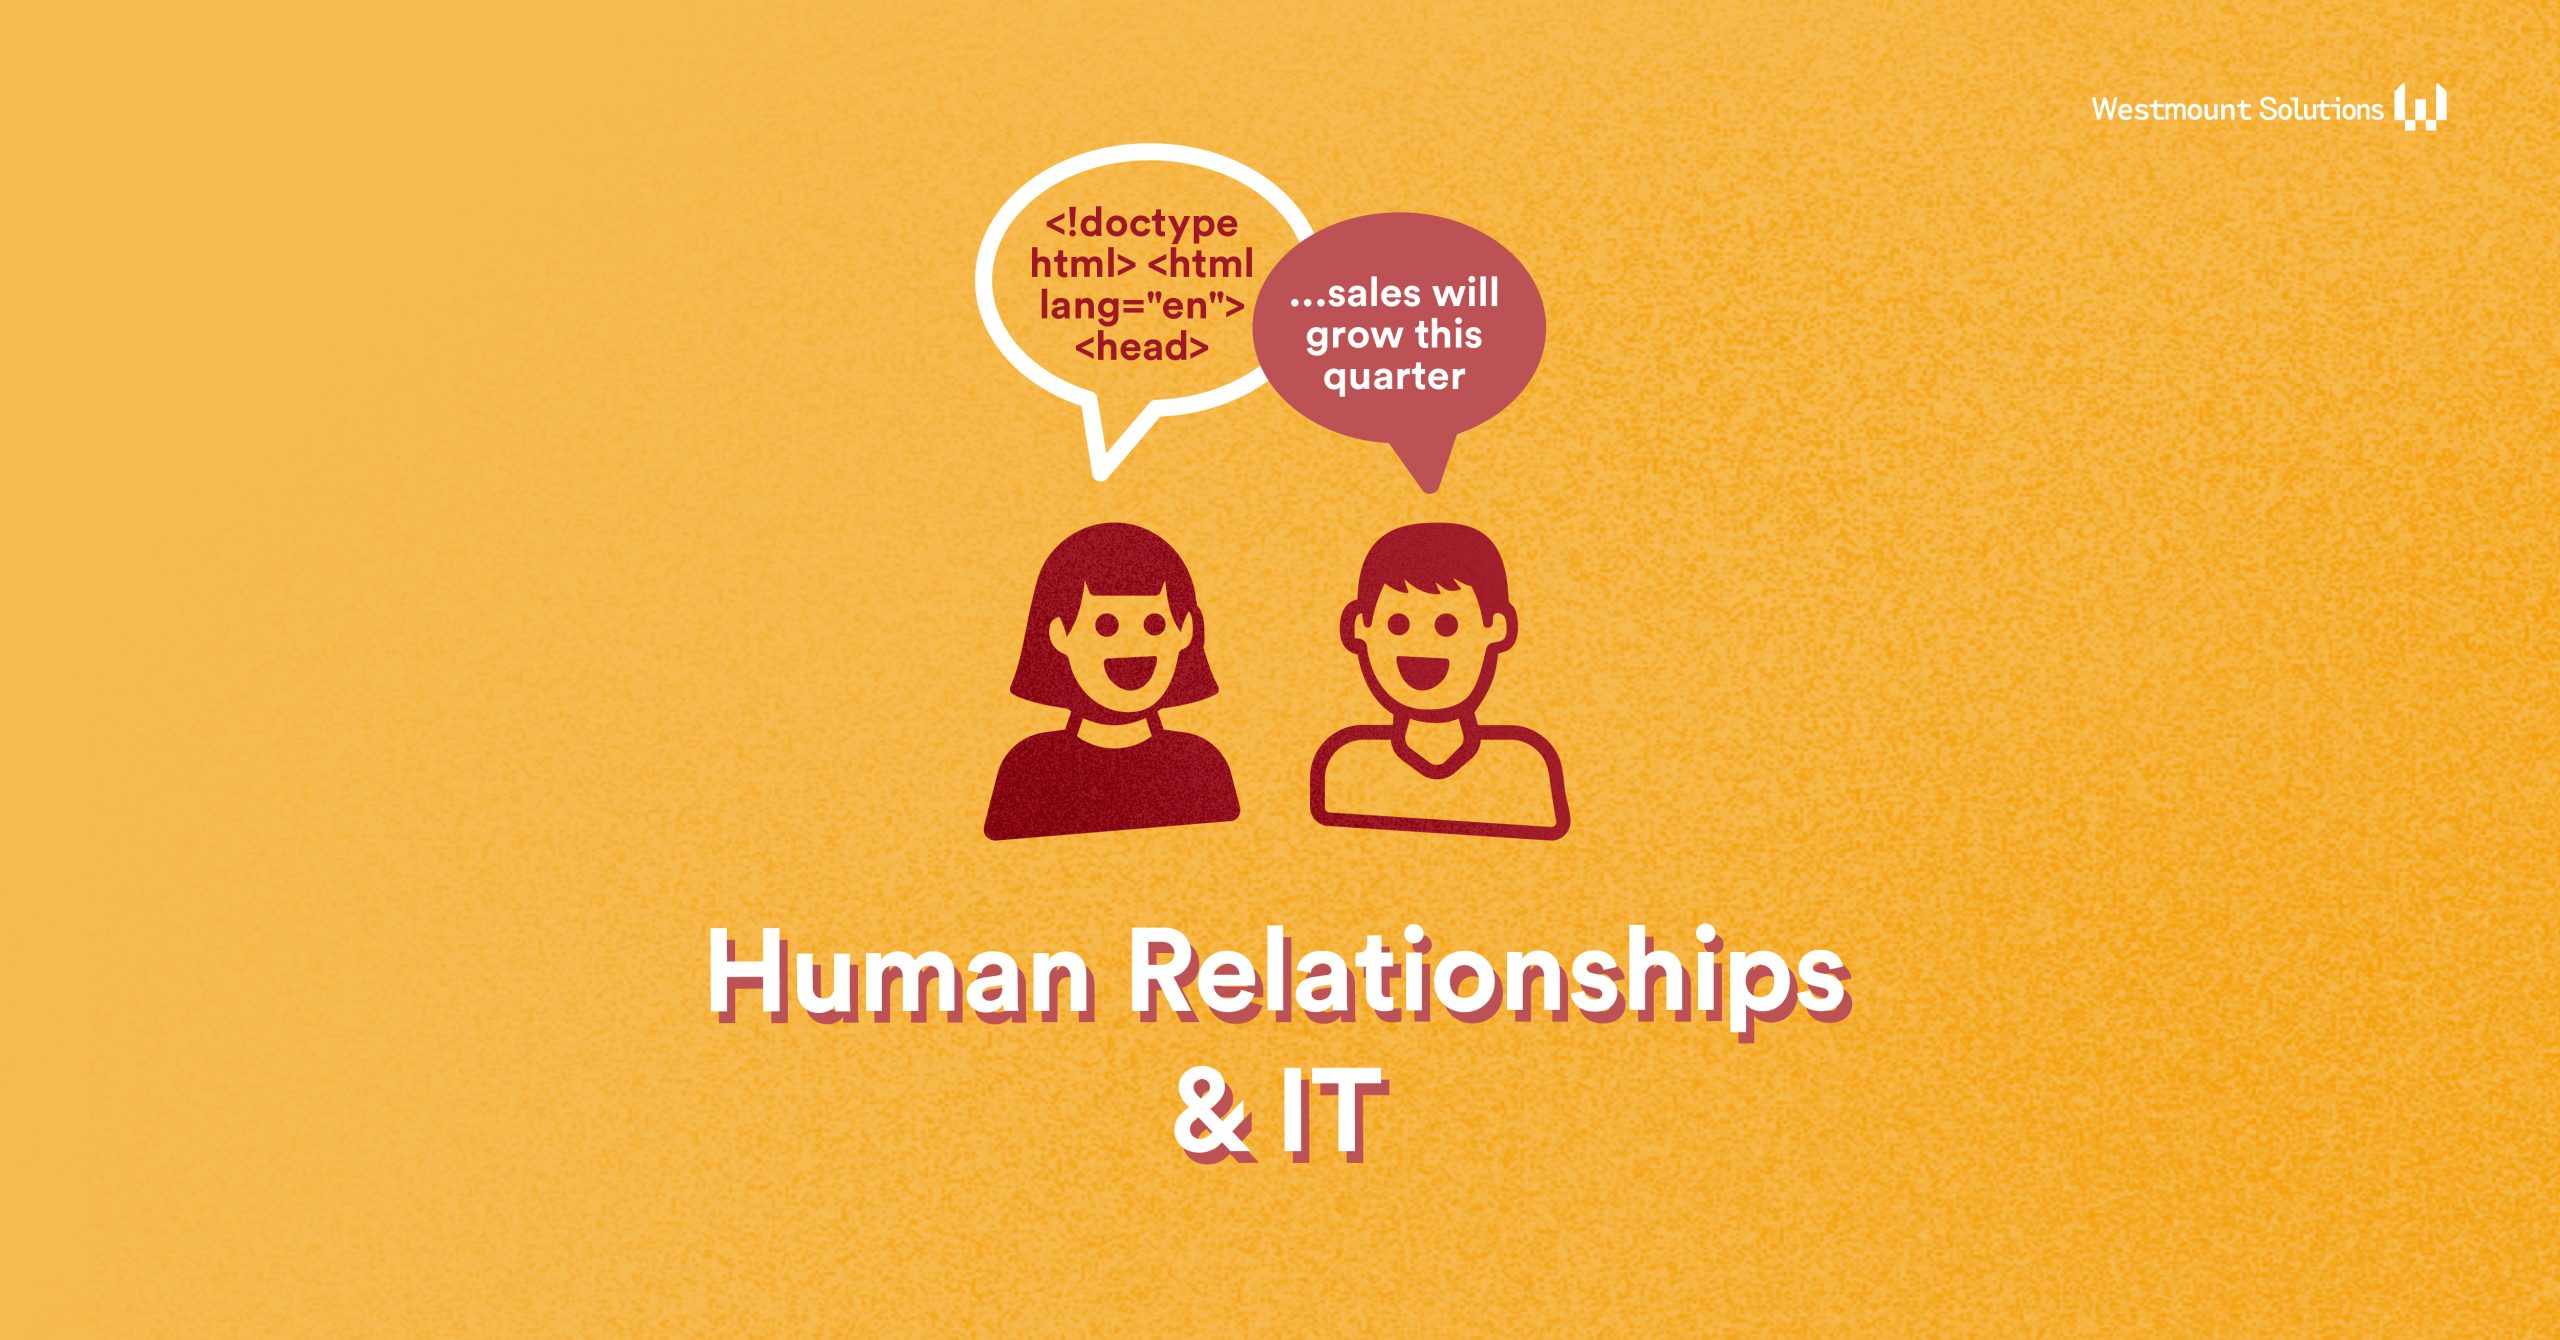 Human Relationships in IT